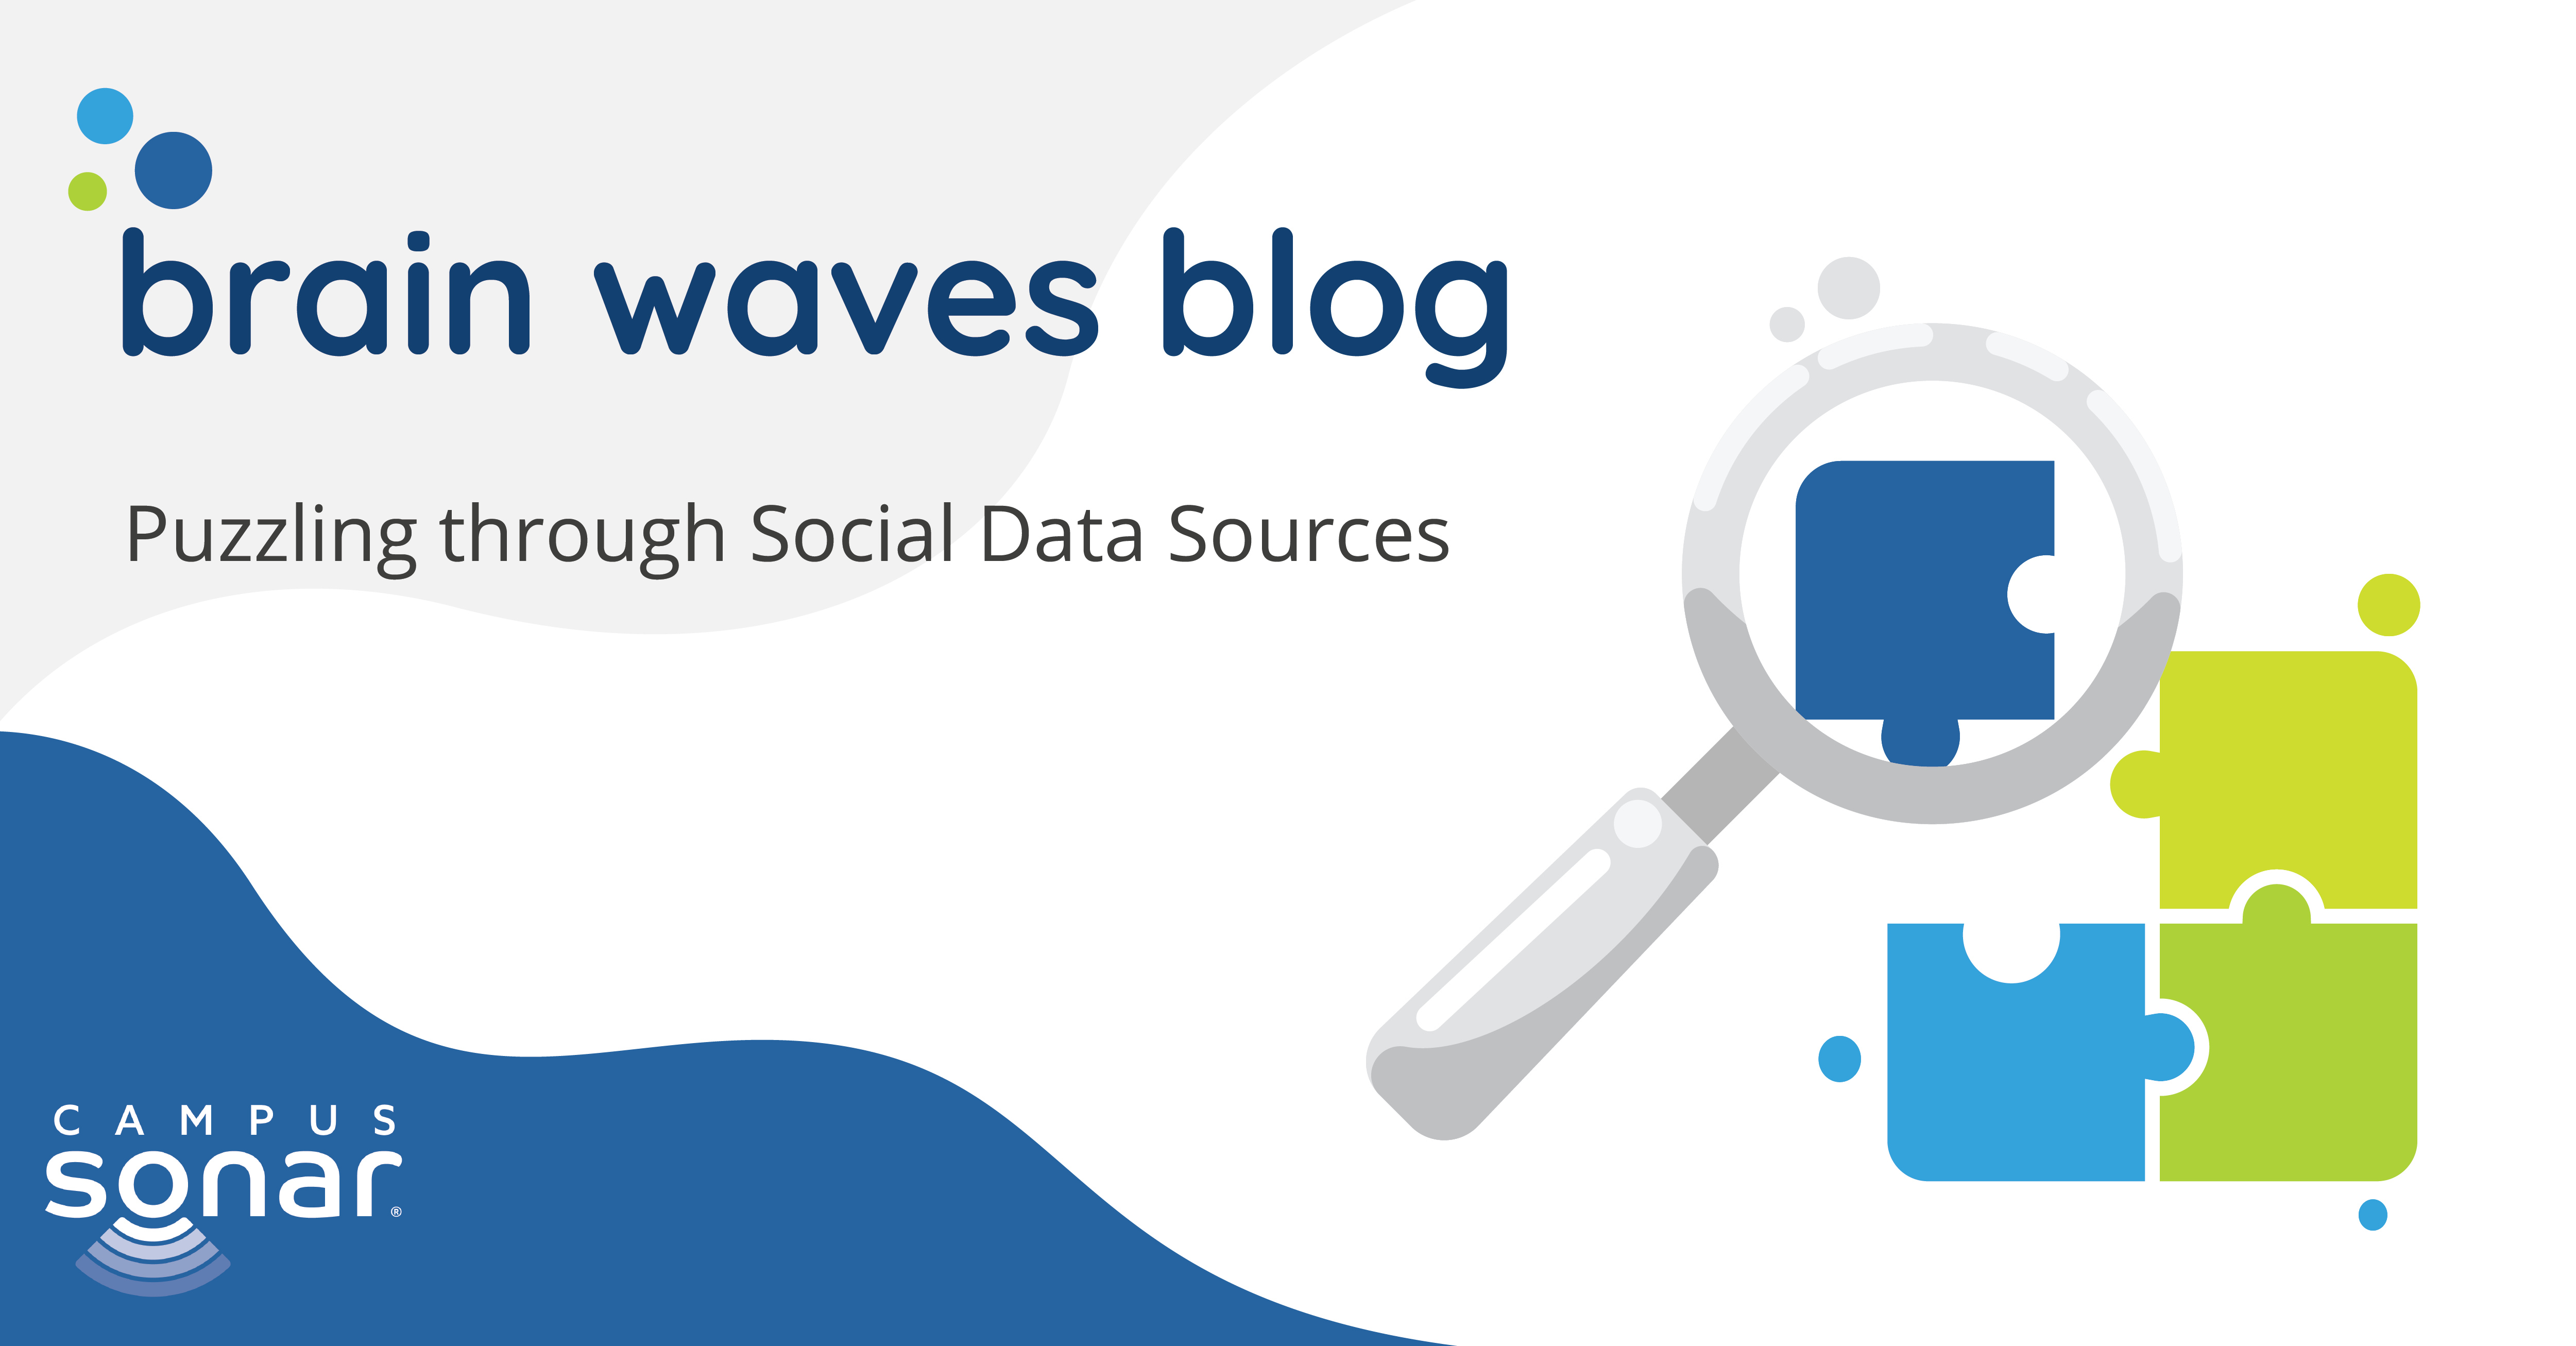 Blog post image for Puzzling through Social Data Sources